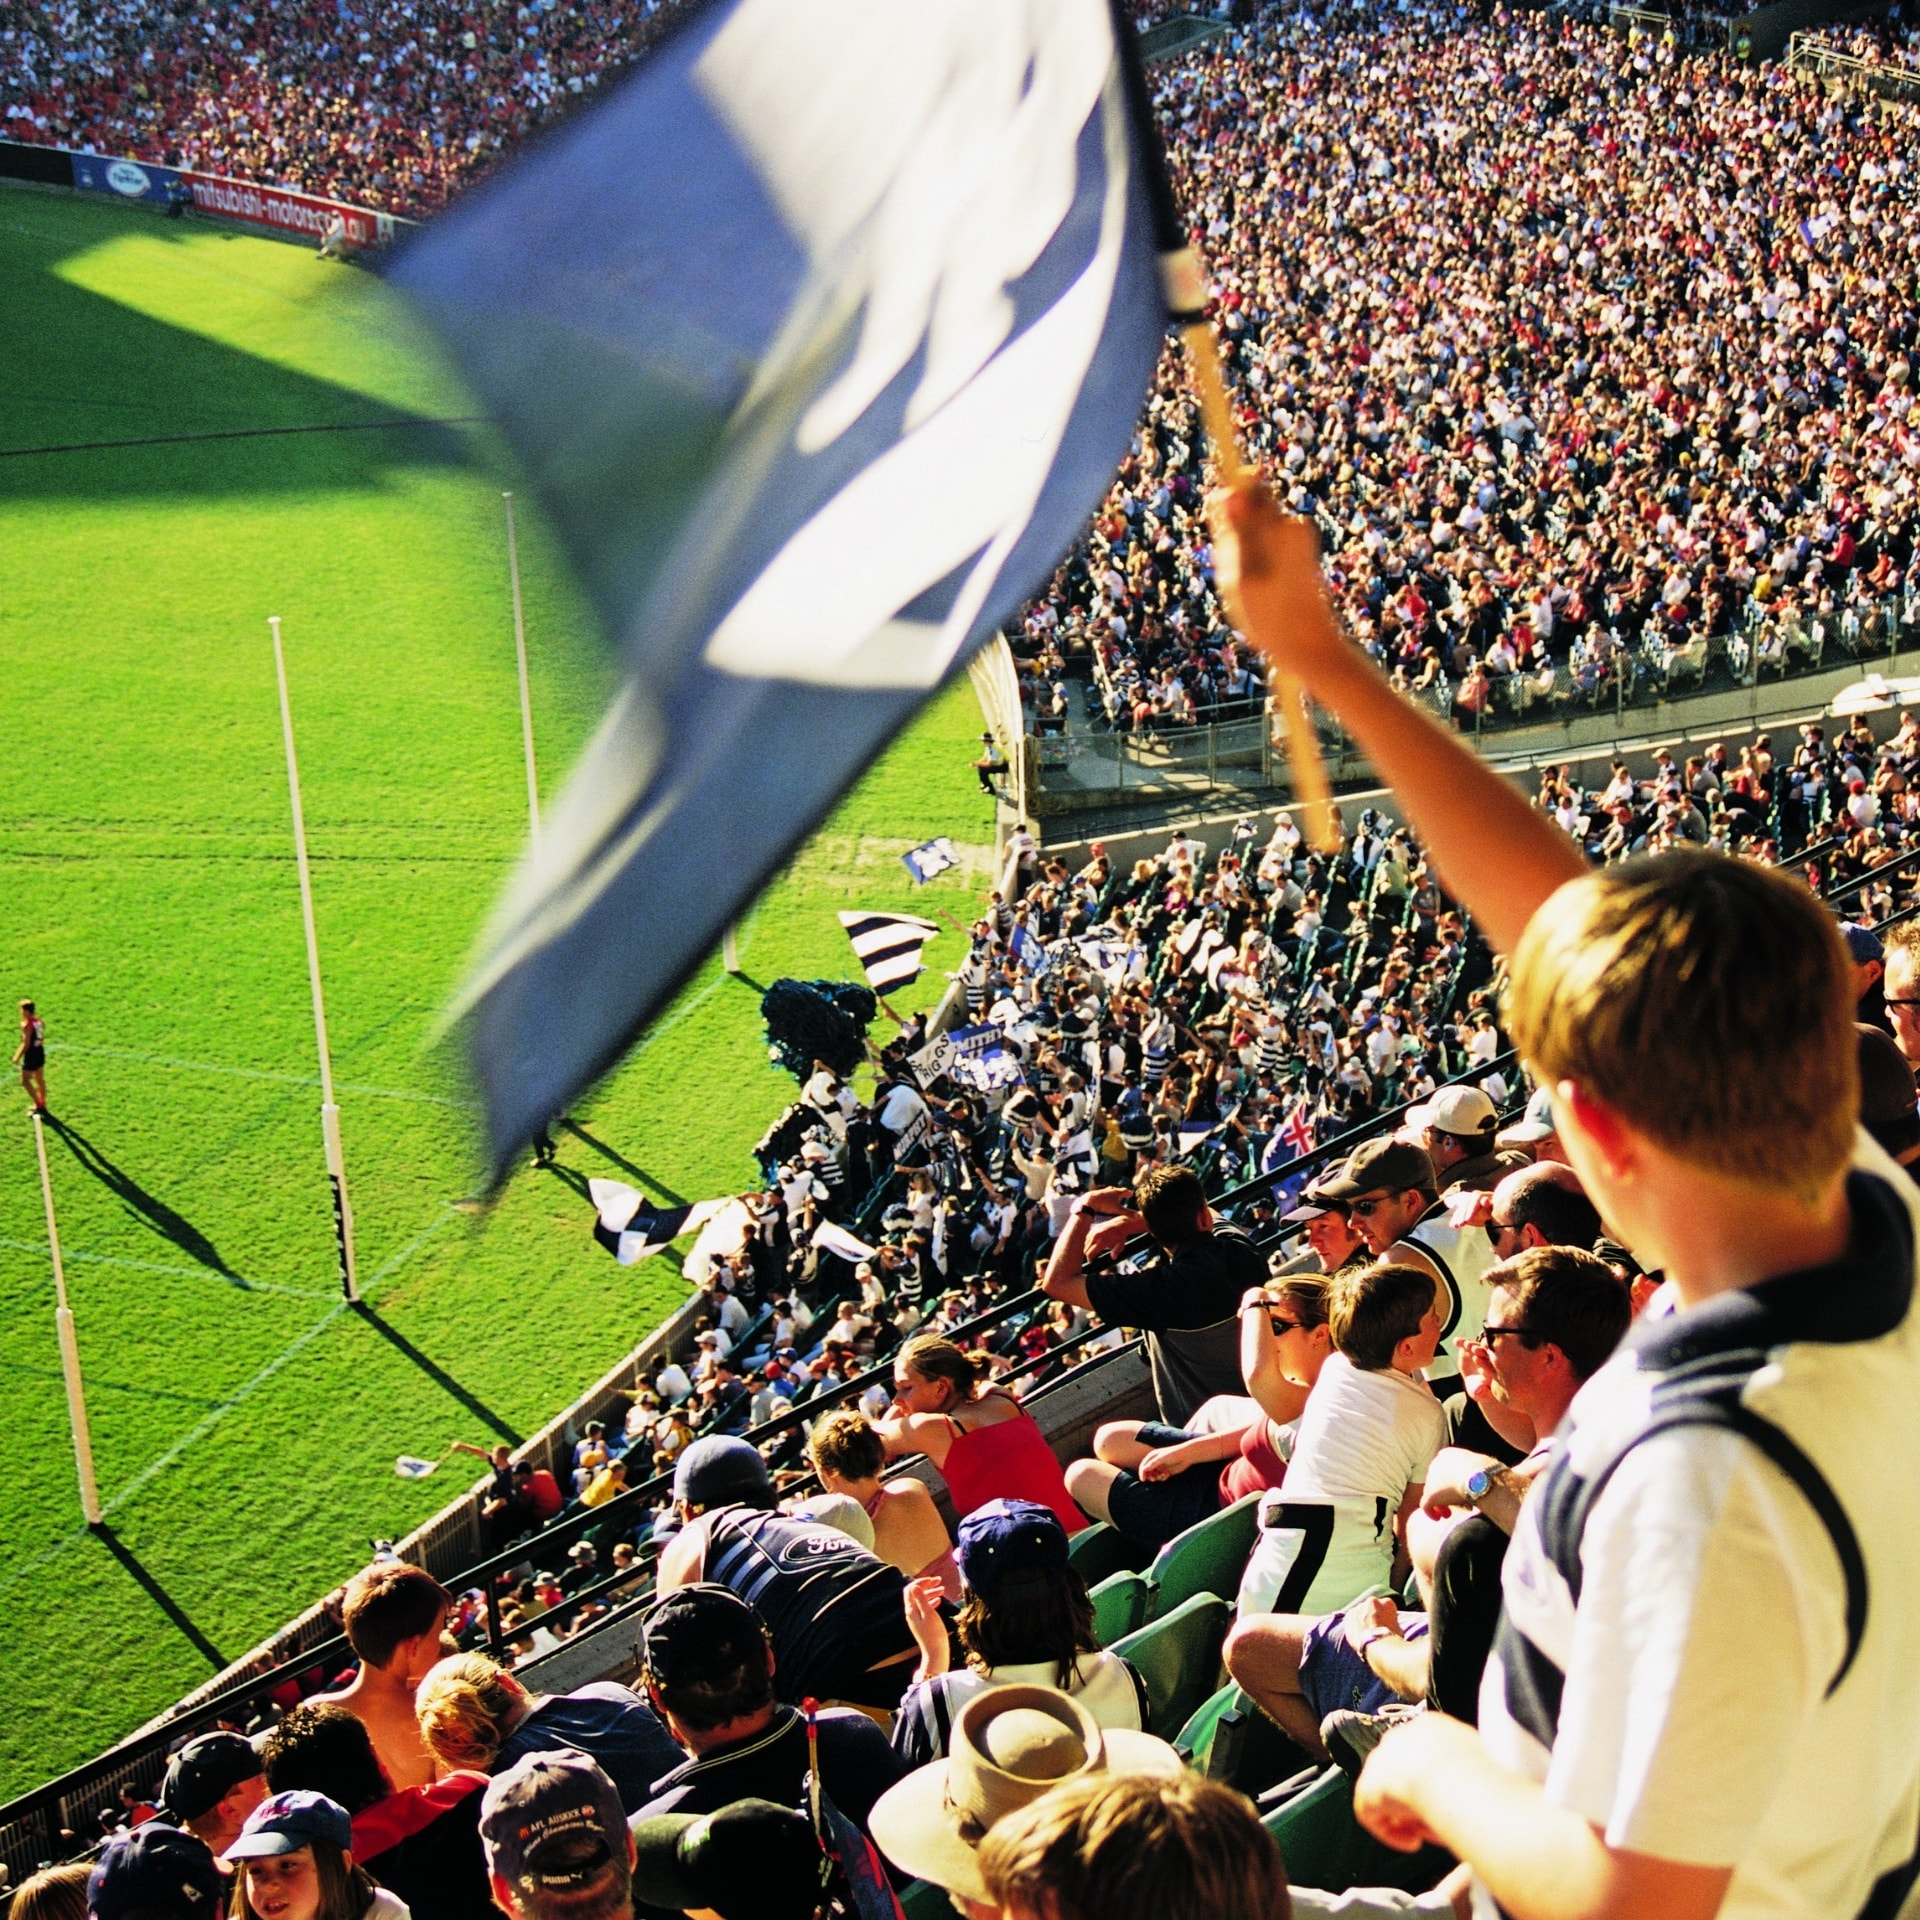 Fan waves flag at the AFL grand final in Melbourne © Tourism Victoria